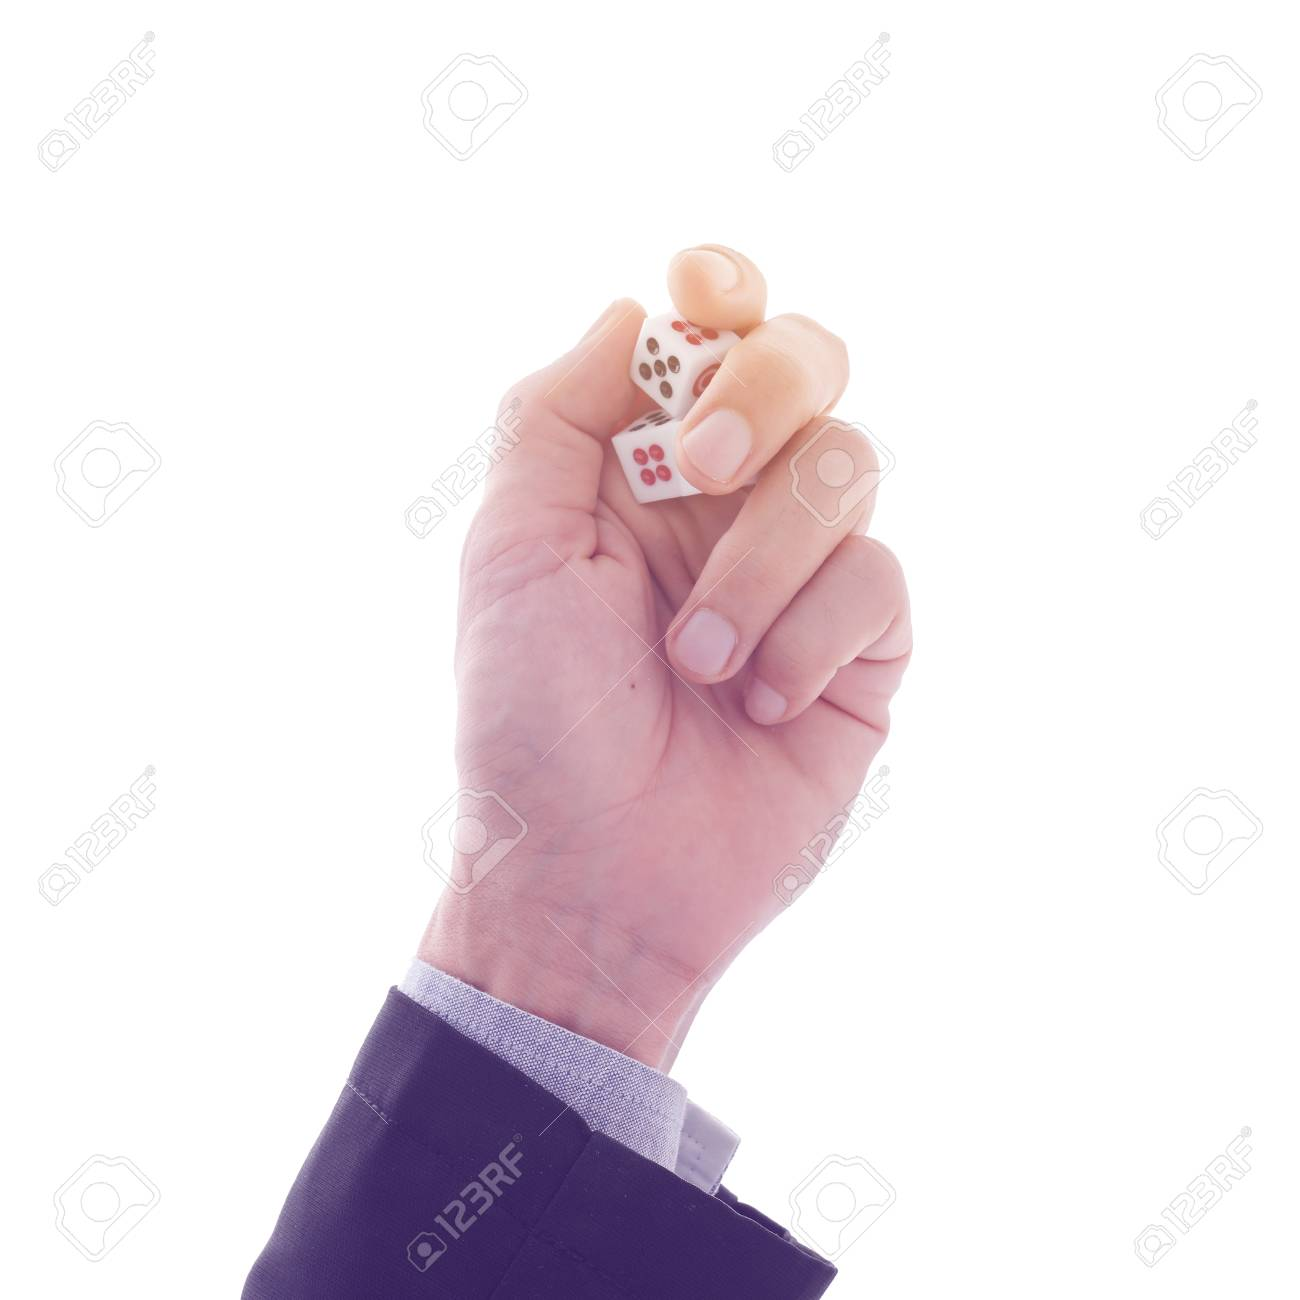 Business man hands hold and show dice in palm, retro filter,